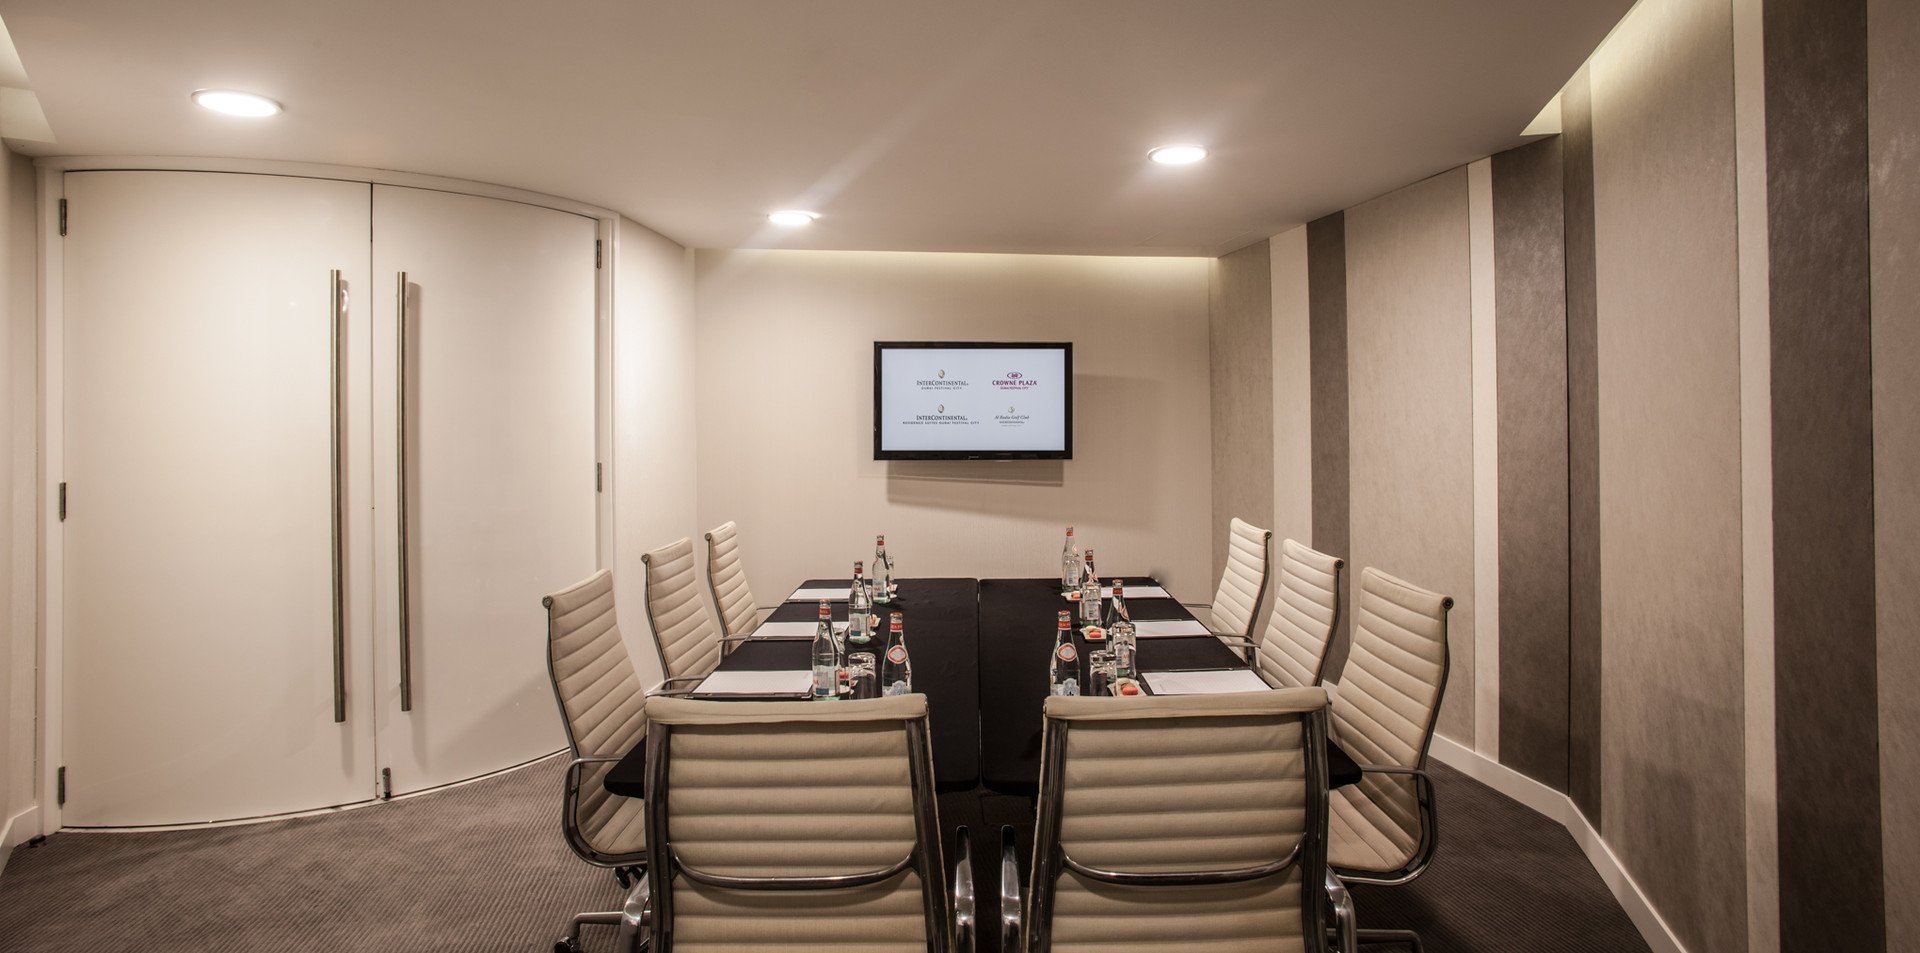 Events Center Al Dana Boardroom Setup.jpg